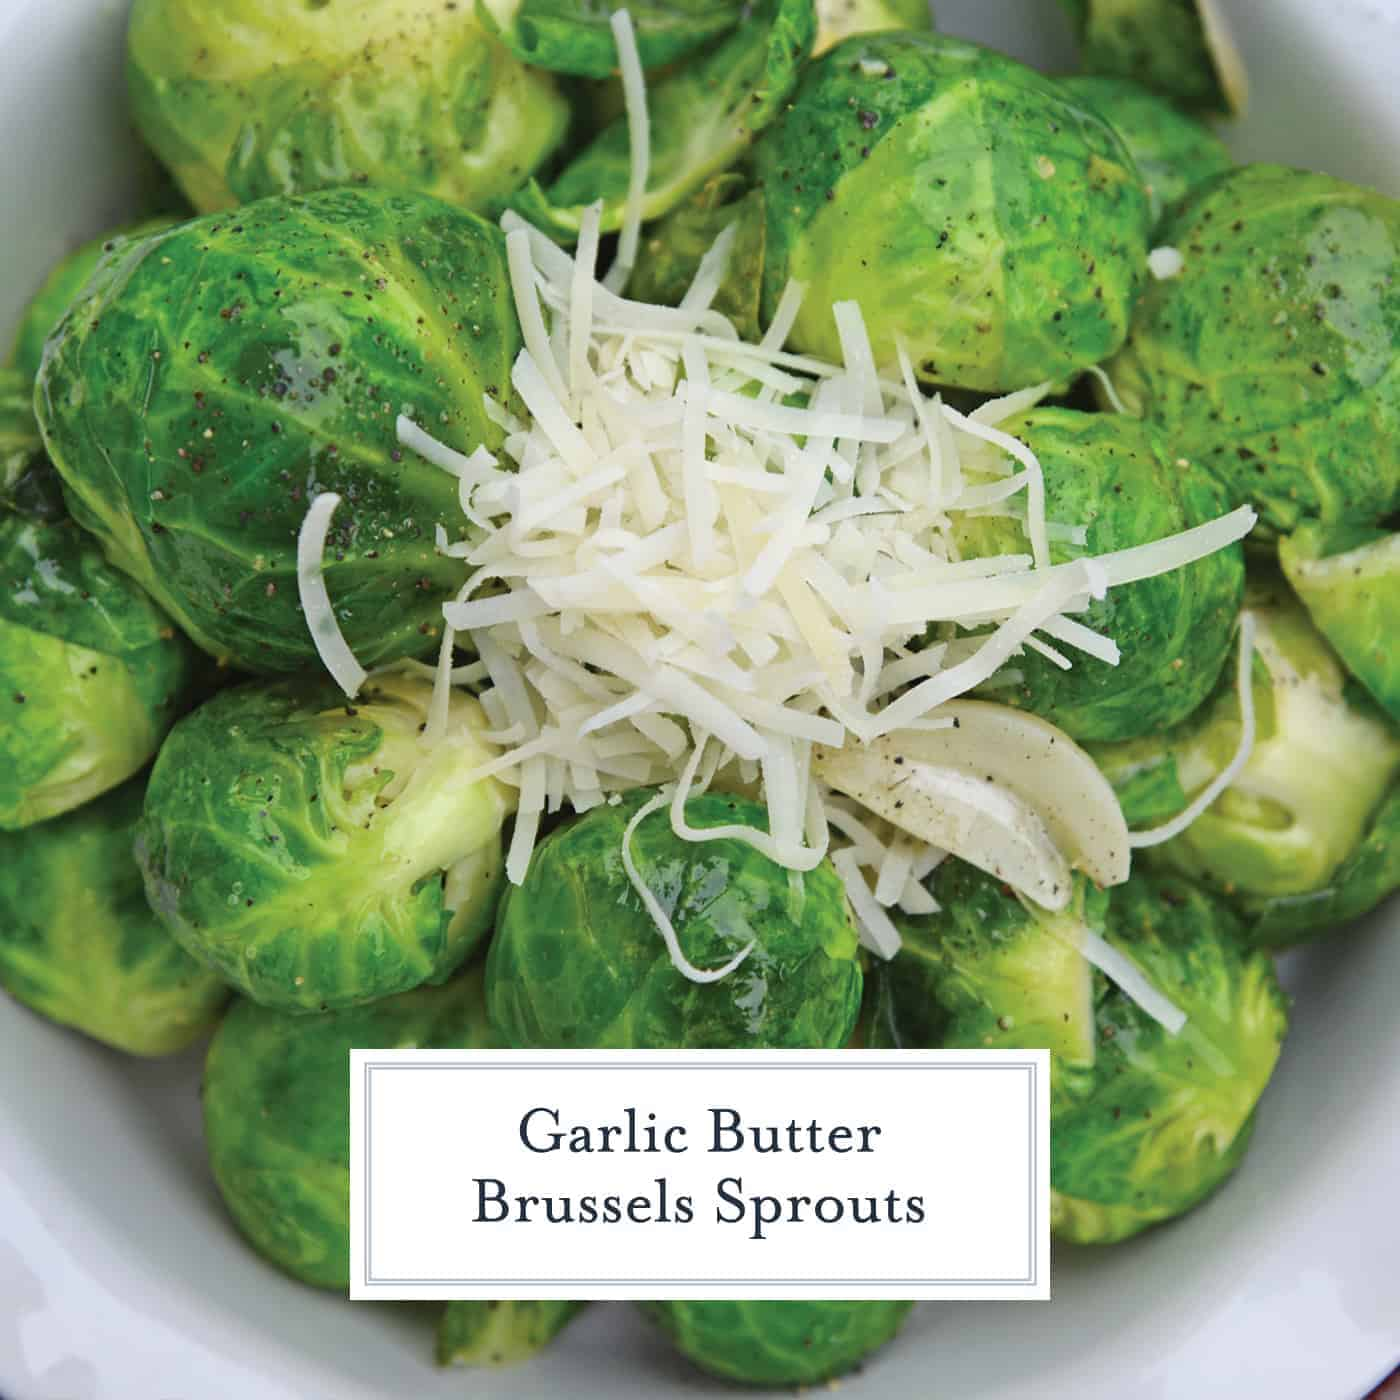 Garlic Butter Brussels Sprouts is an easy side dish that even sprout haters will love! Fresh brussel sprouts covered in butter, garlic, and topped with parmesan cheese. #brusselssproutsrecipes #garlicbutter www.savoryexperiments.com